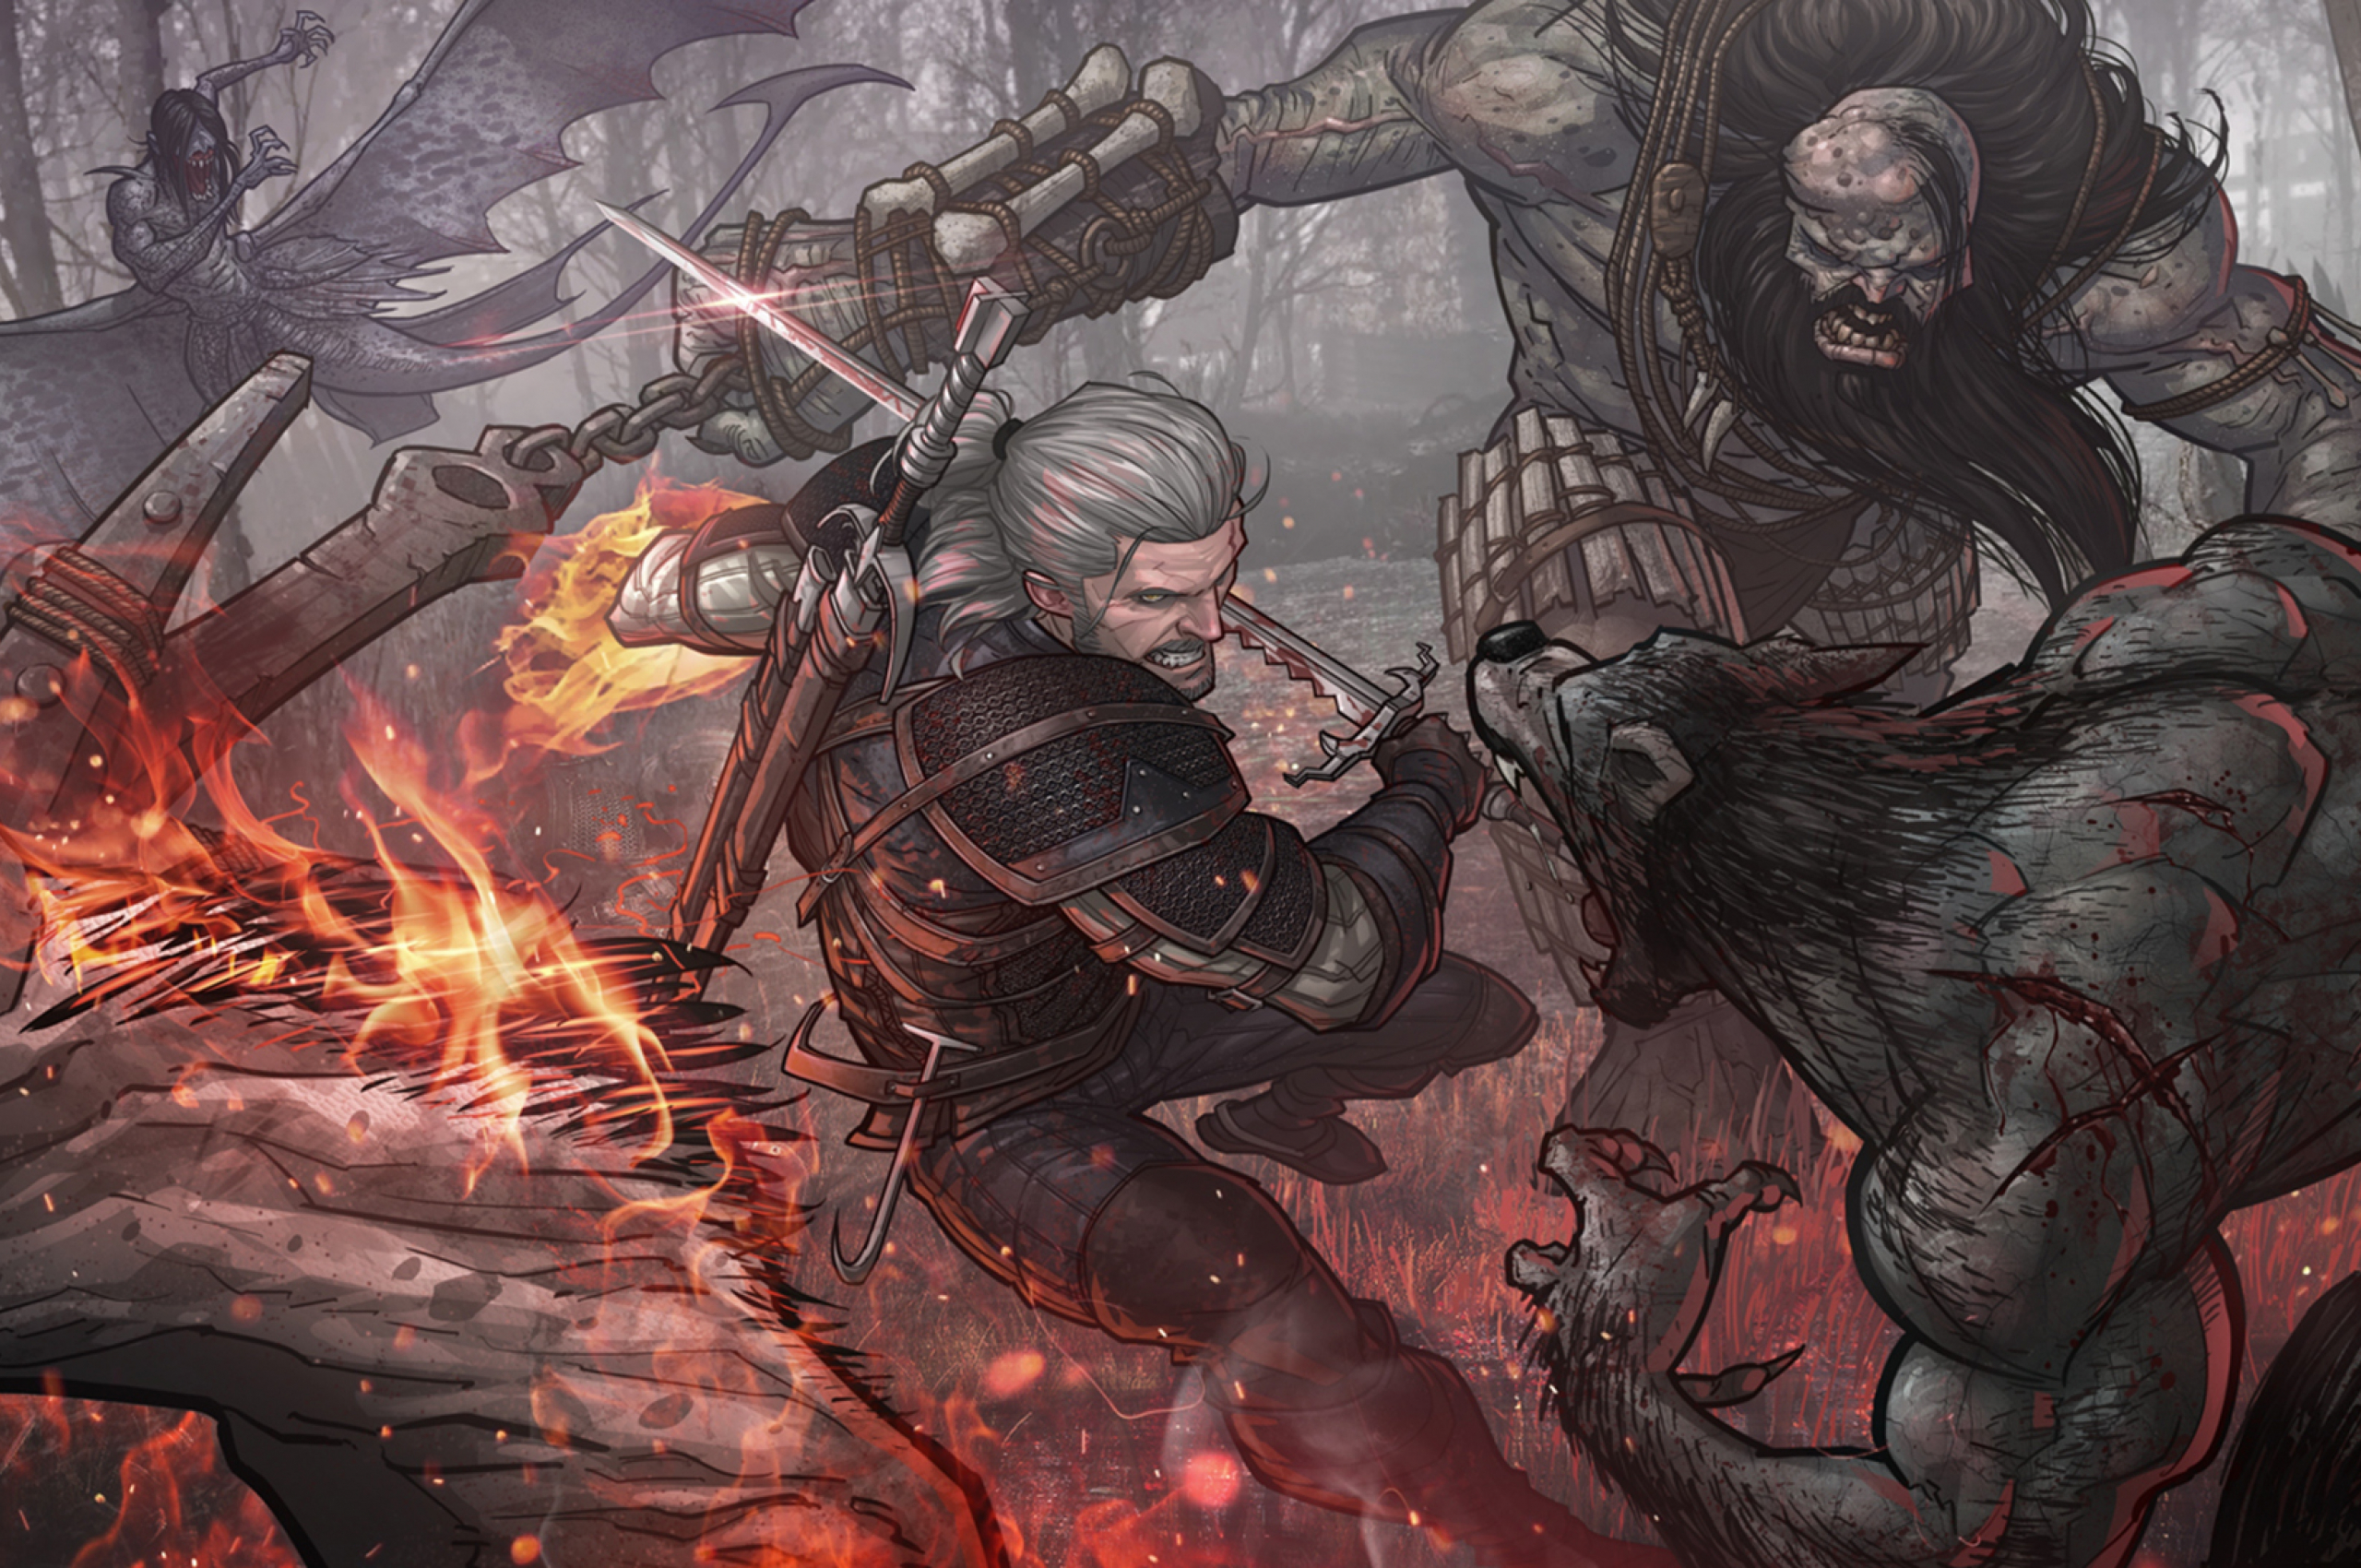 Free Download Wallpaper The Witcher 3 Geralt Patrick Brown The